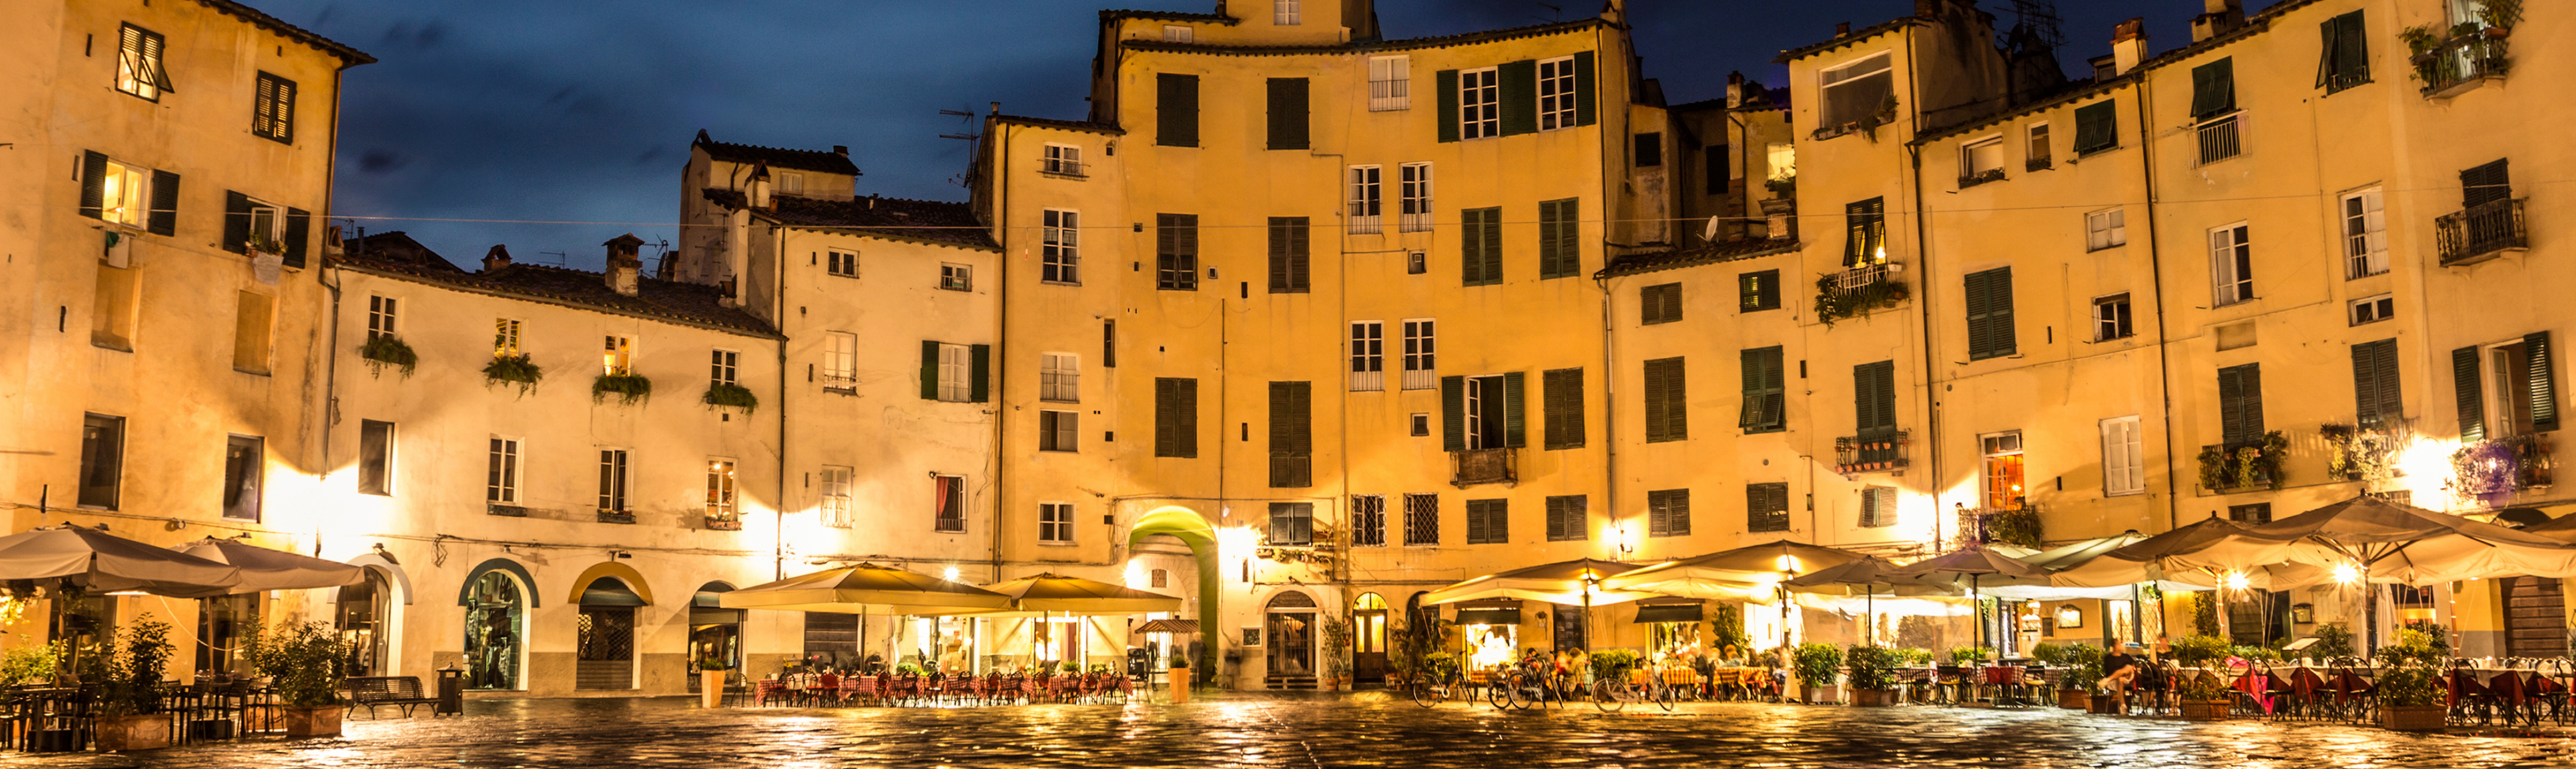 Illuminated view of Piazza dell' Anfiteatro in Lucca, Italy